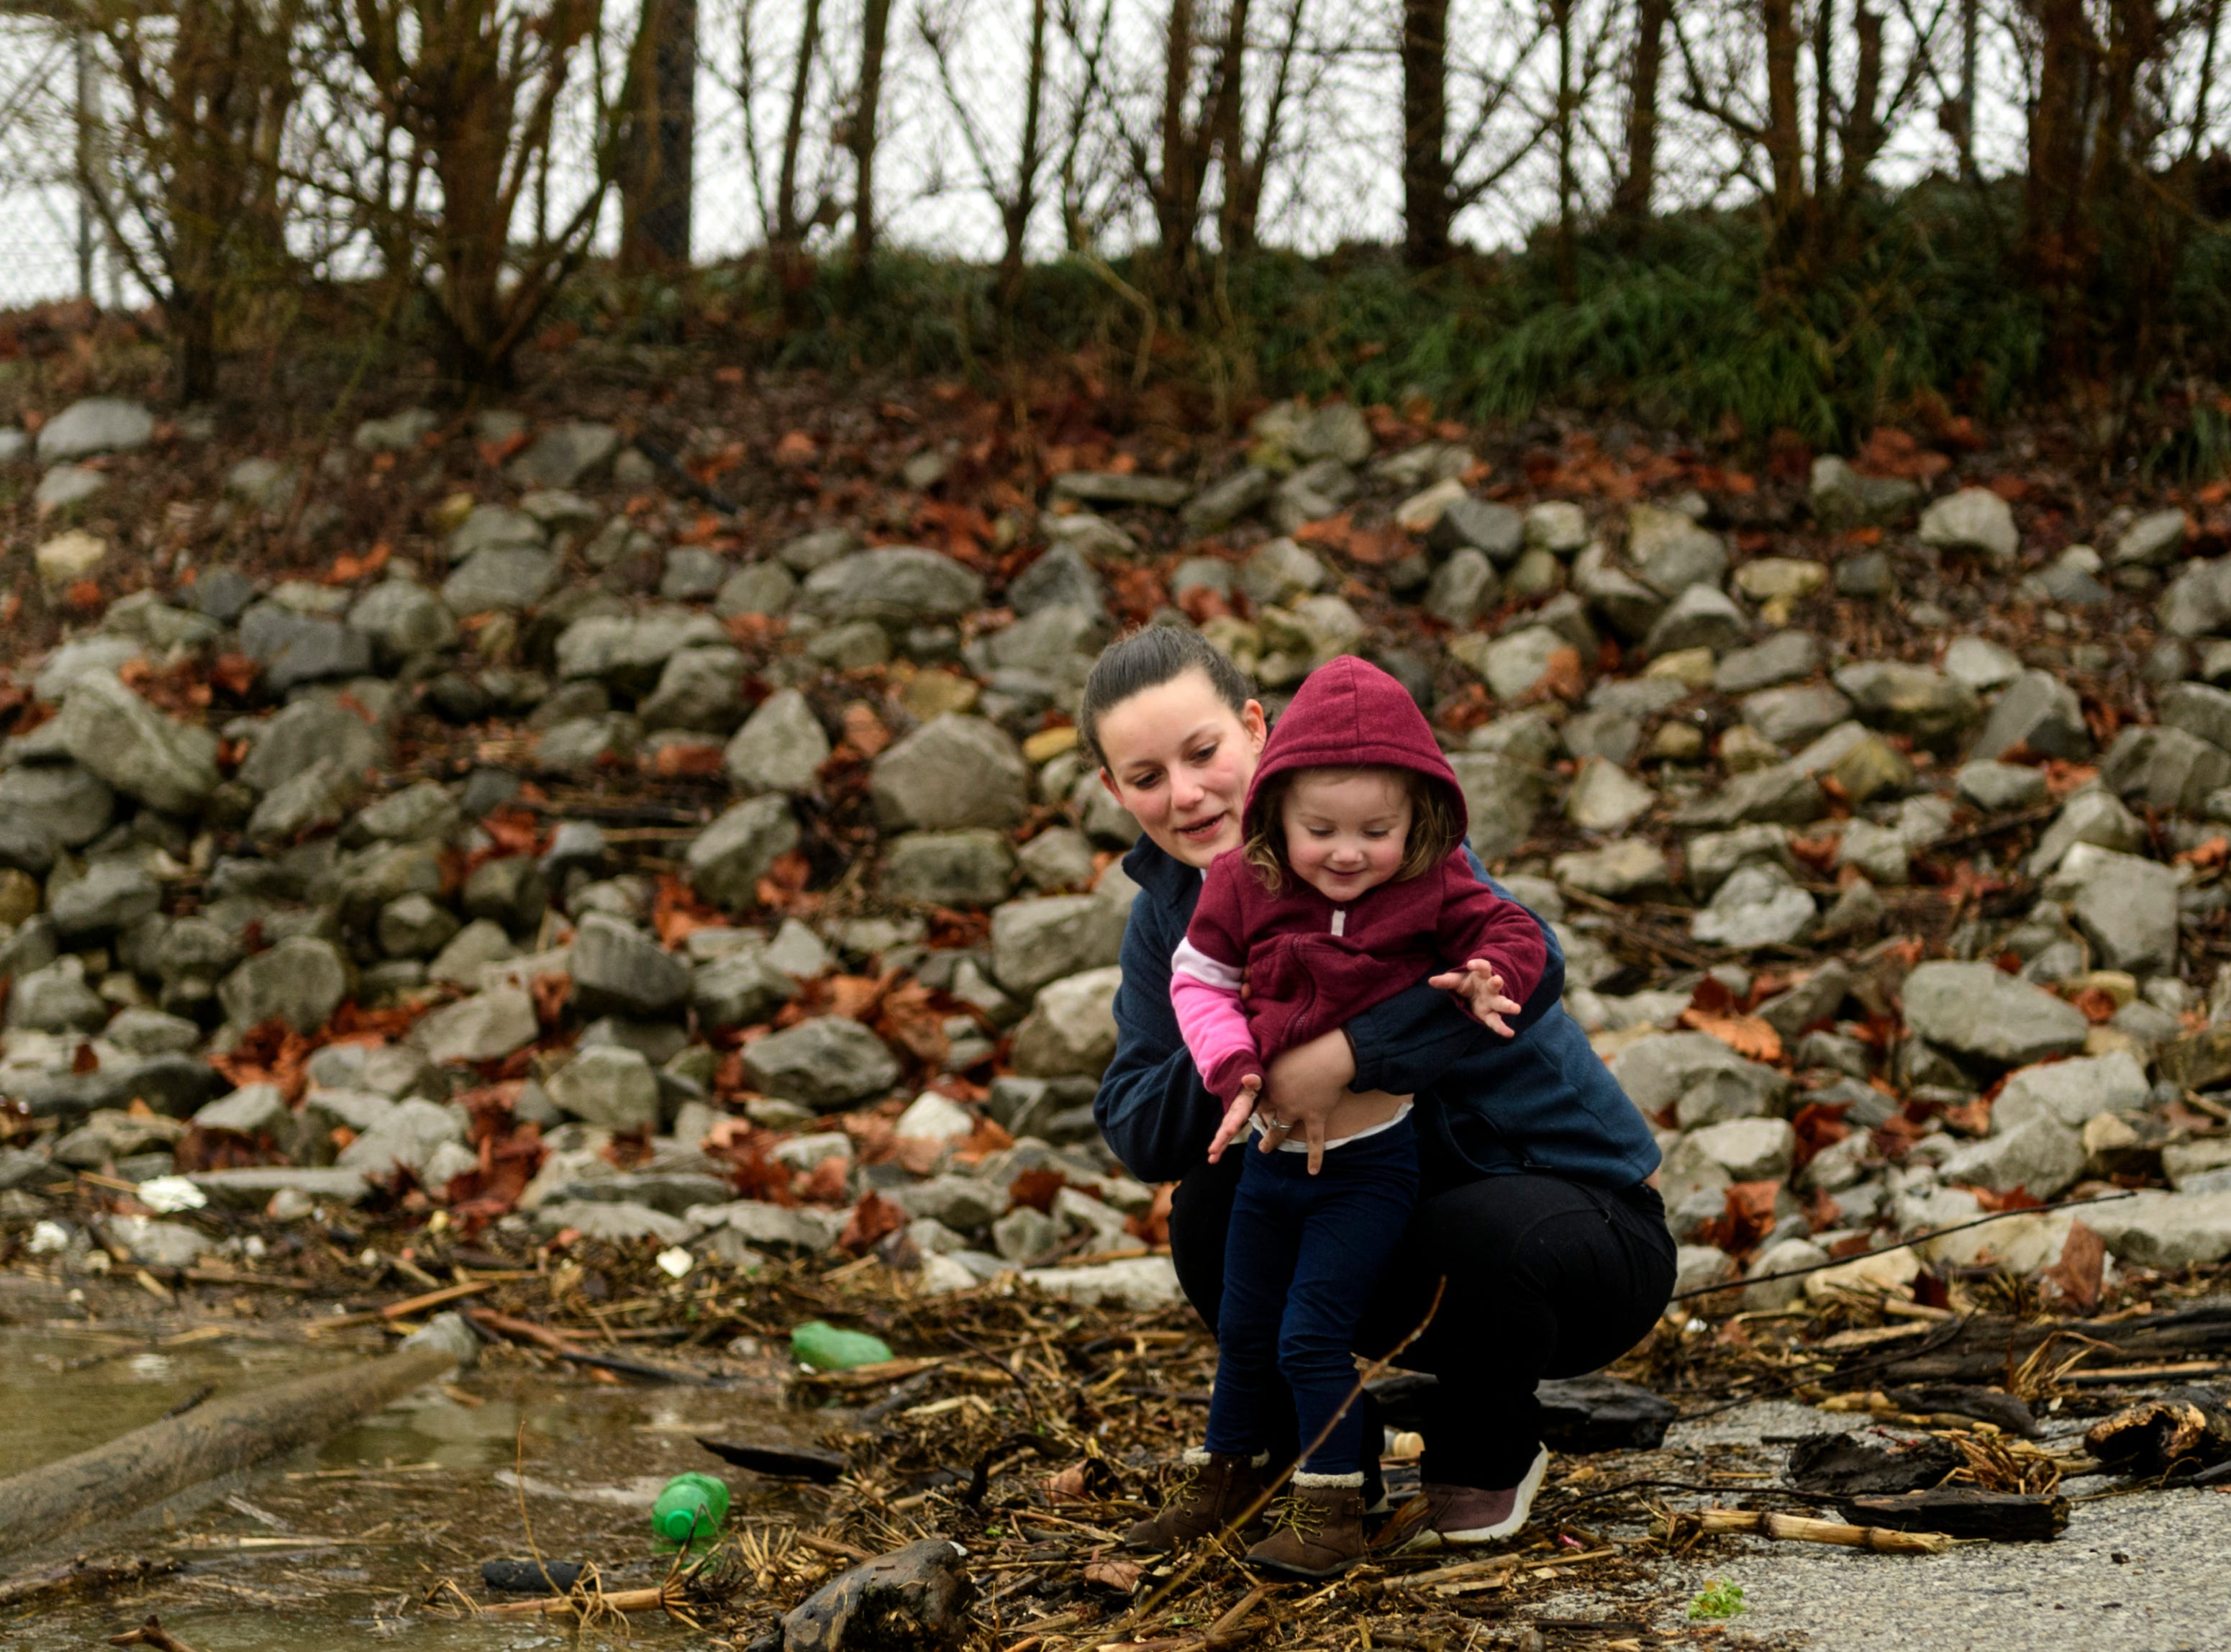 Sherri and two-year-old Hayden Rye of Mt. Vernon look for small rocks to throw into the flooded river to make a splash near Riverbend Park in downtown Mt. Vernon, Ind., Wednesday, Feb. 20, 2019. According to the National Weather Service, the flood stage was measured at 46 feet in Mount Vernon at 6 a.m. Wednesday/